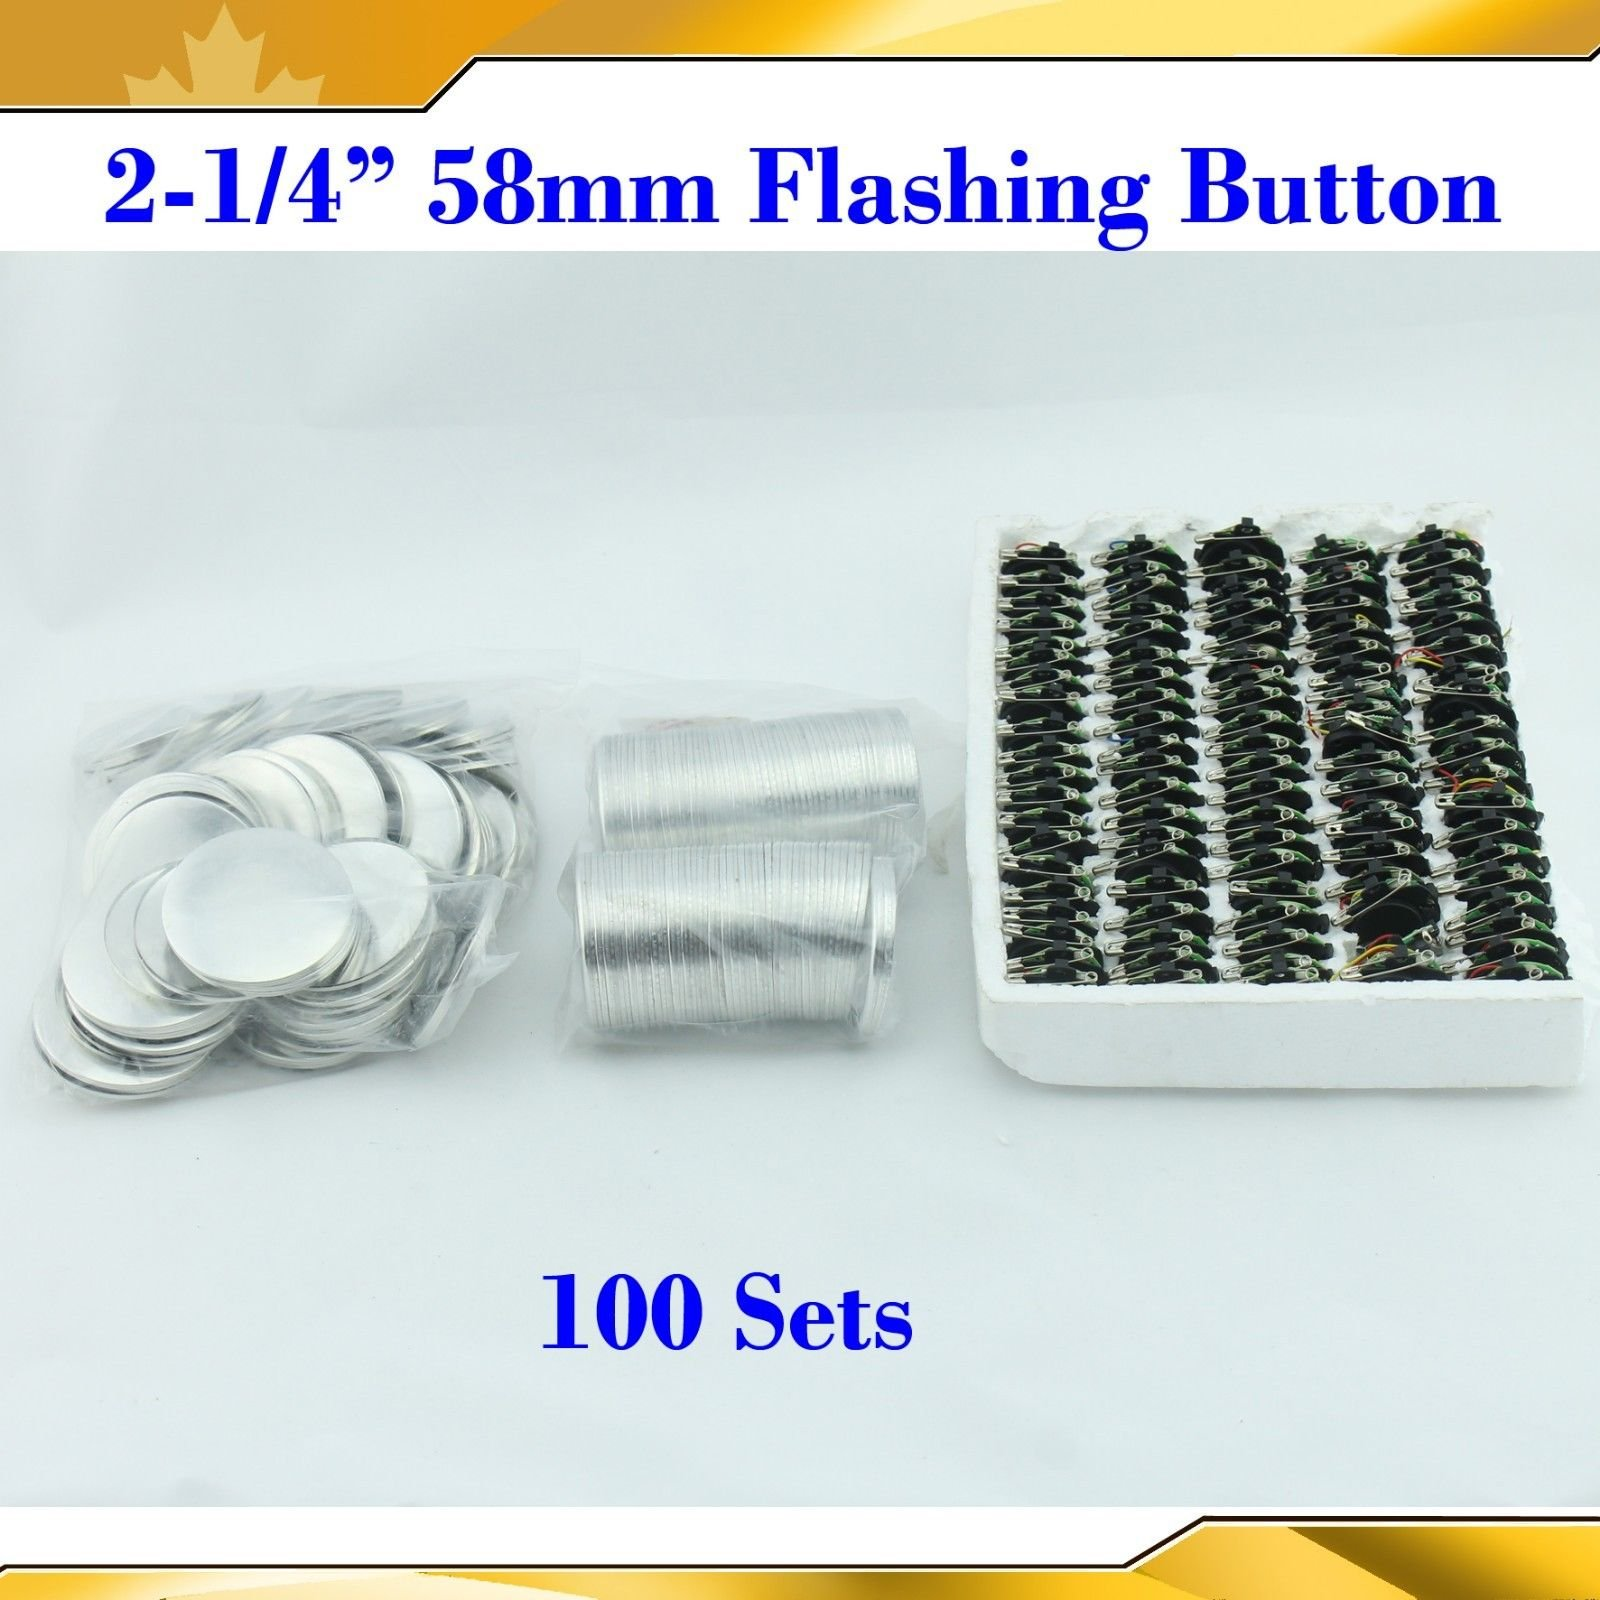 2-1/4'' 58mm 100sets Flashing Shine Light Badge Button Parts for Maker Machine